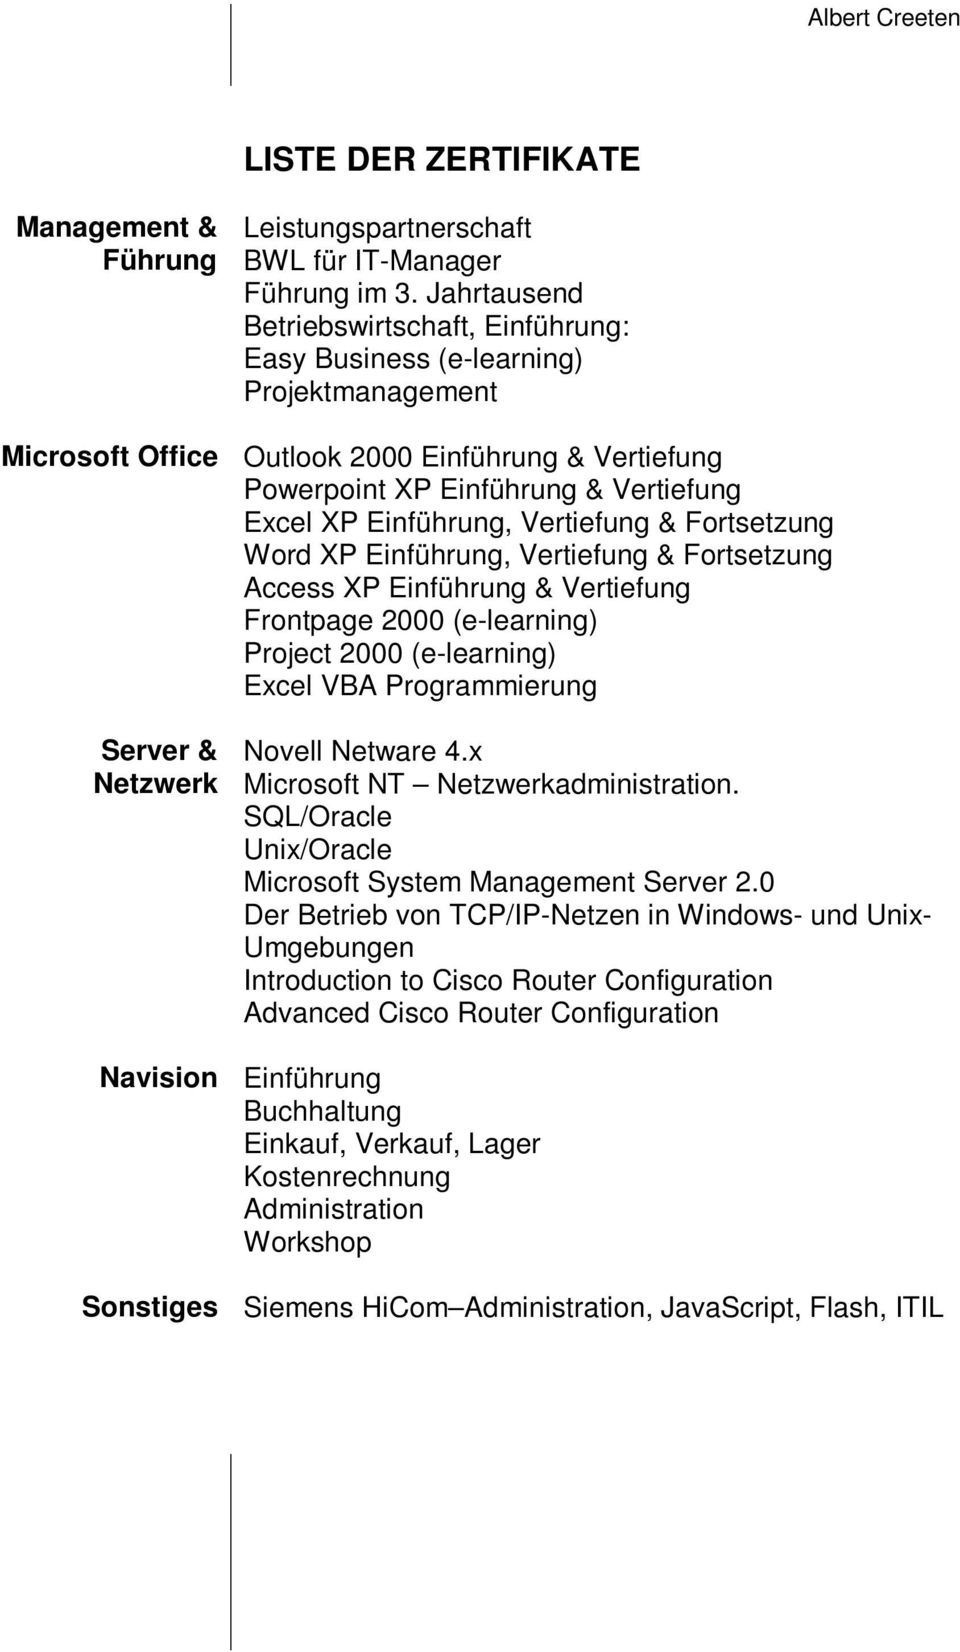 Einführung, Vertiefung & Fortsetzung Word XP Einführung, Vertiefung & Fortsetzung Access XP Einführung & Vertiefung Frontpage 2000 (e-learning) Project 2000 (e-learning) Excel VBA Programmierung